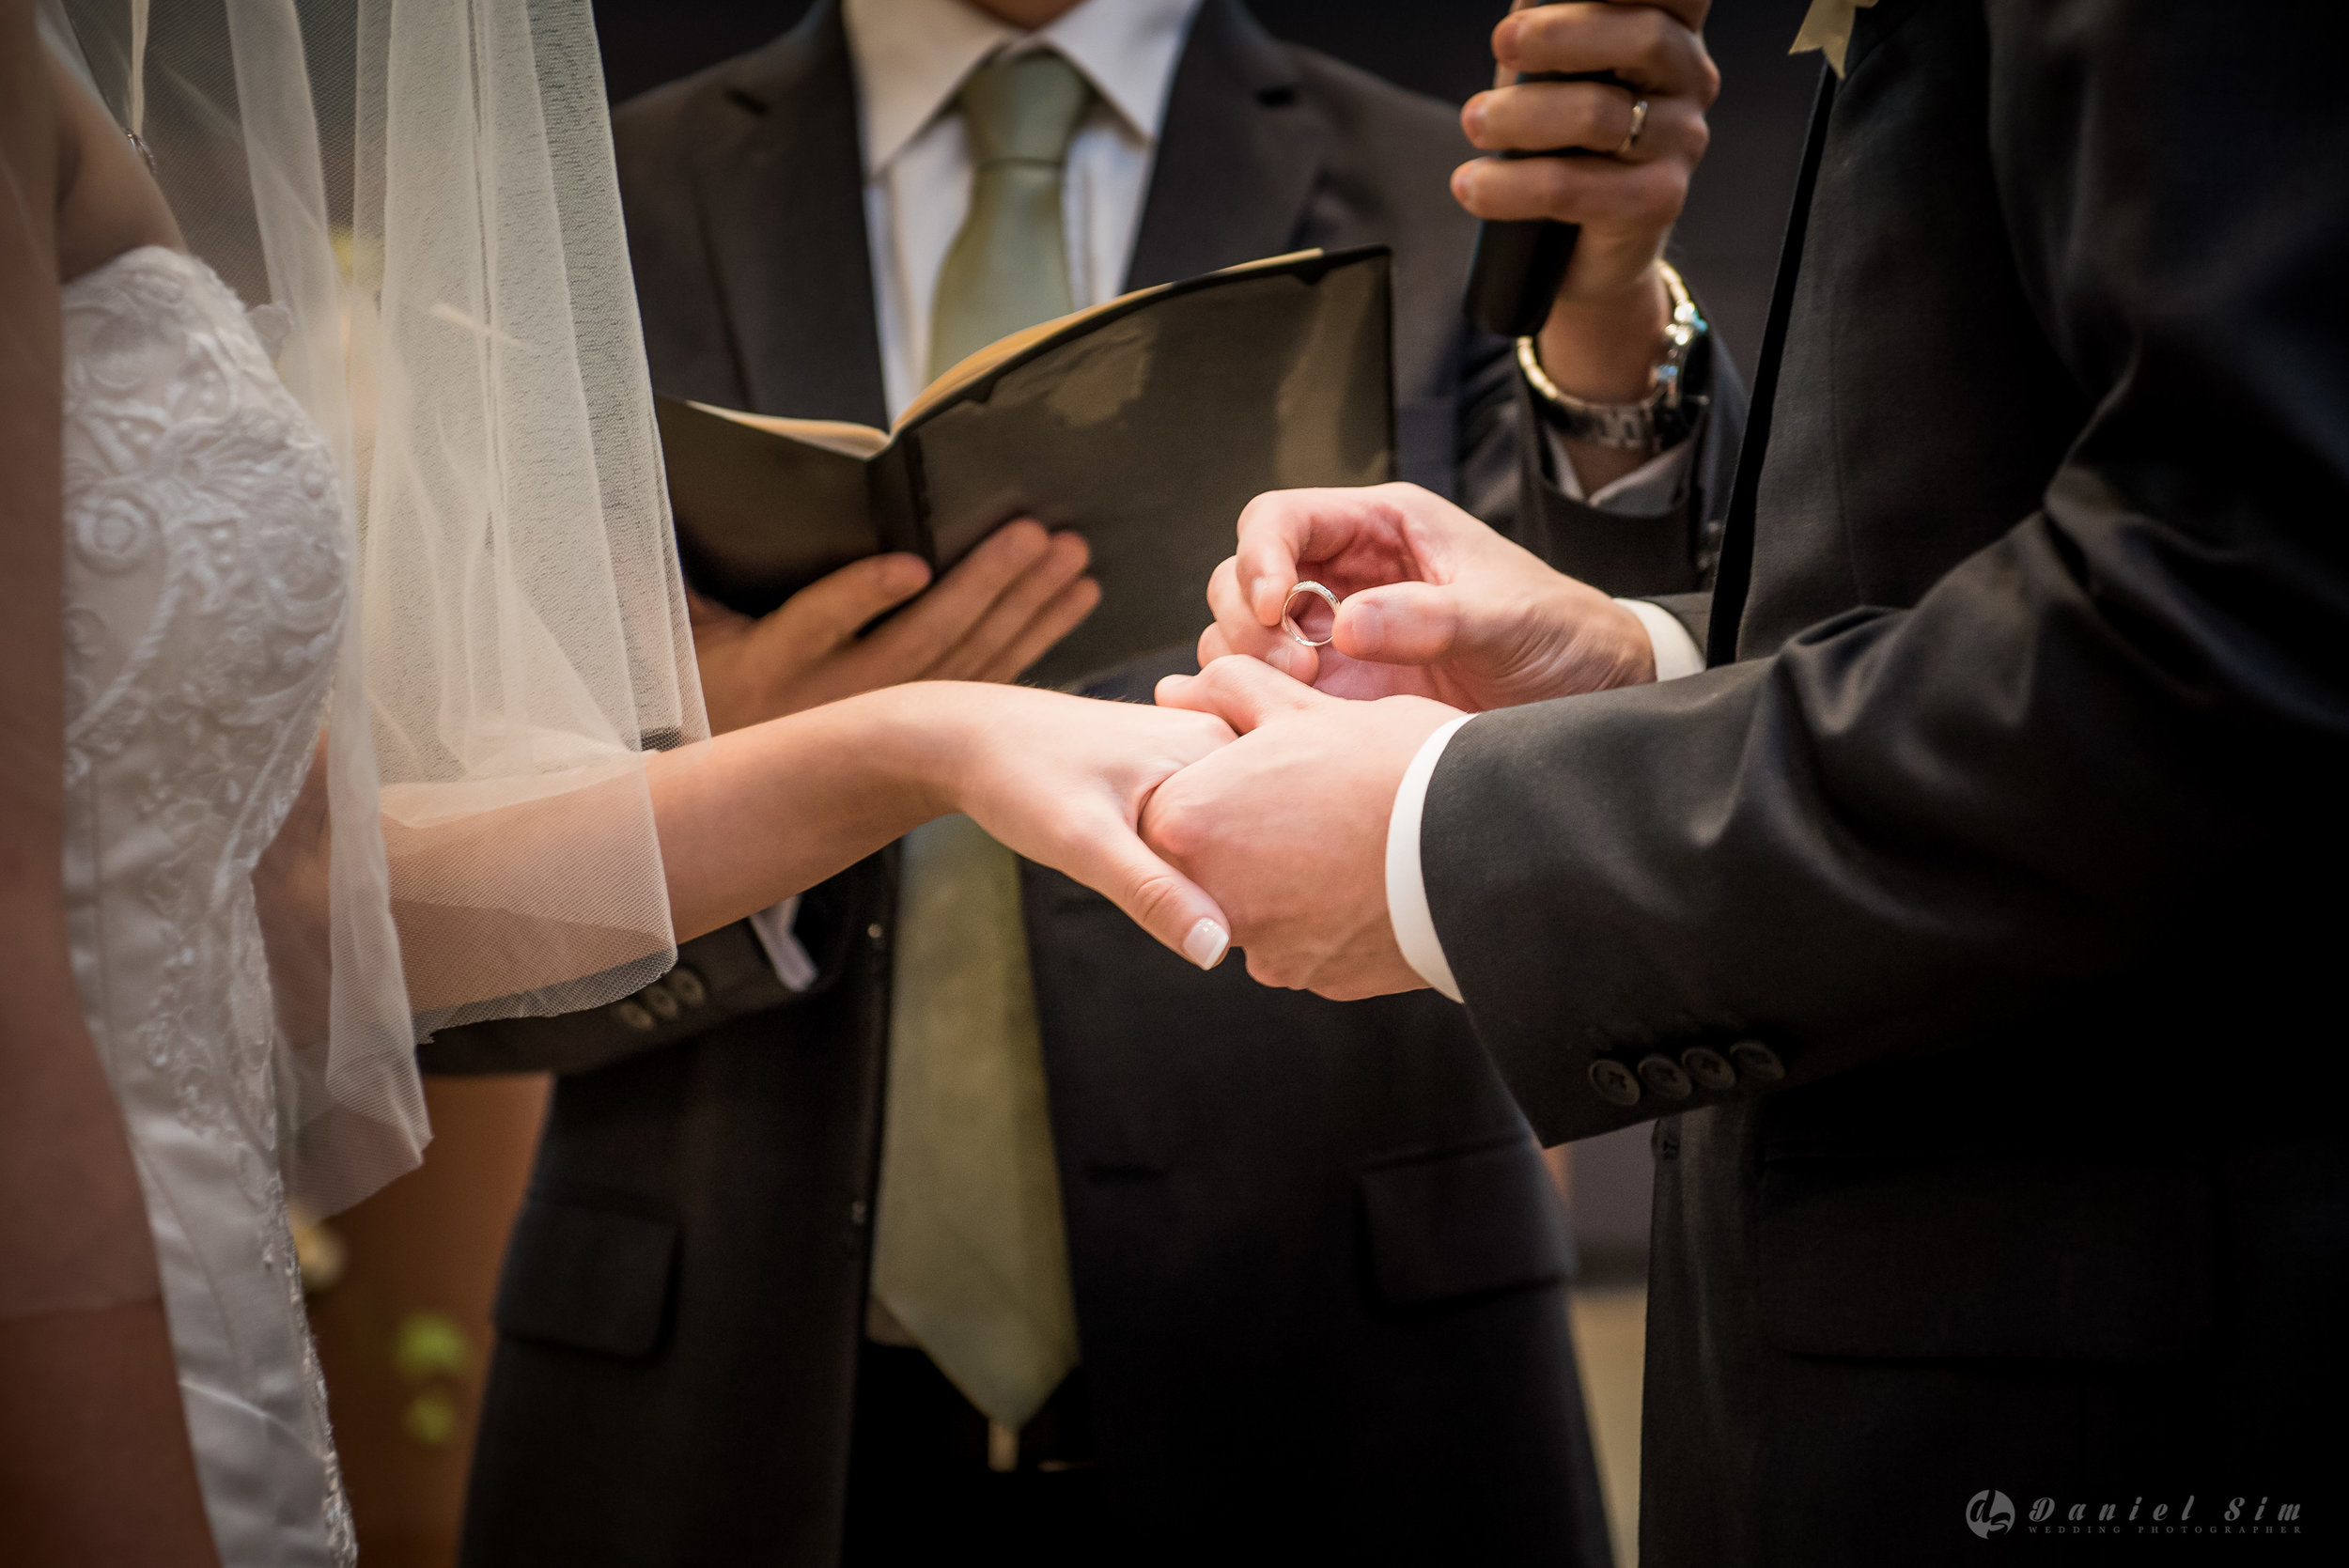 ring-hand-wedding-groom-bride-church-singapore.jpg